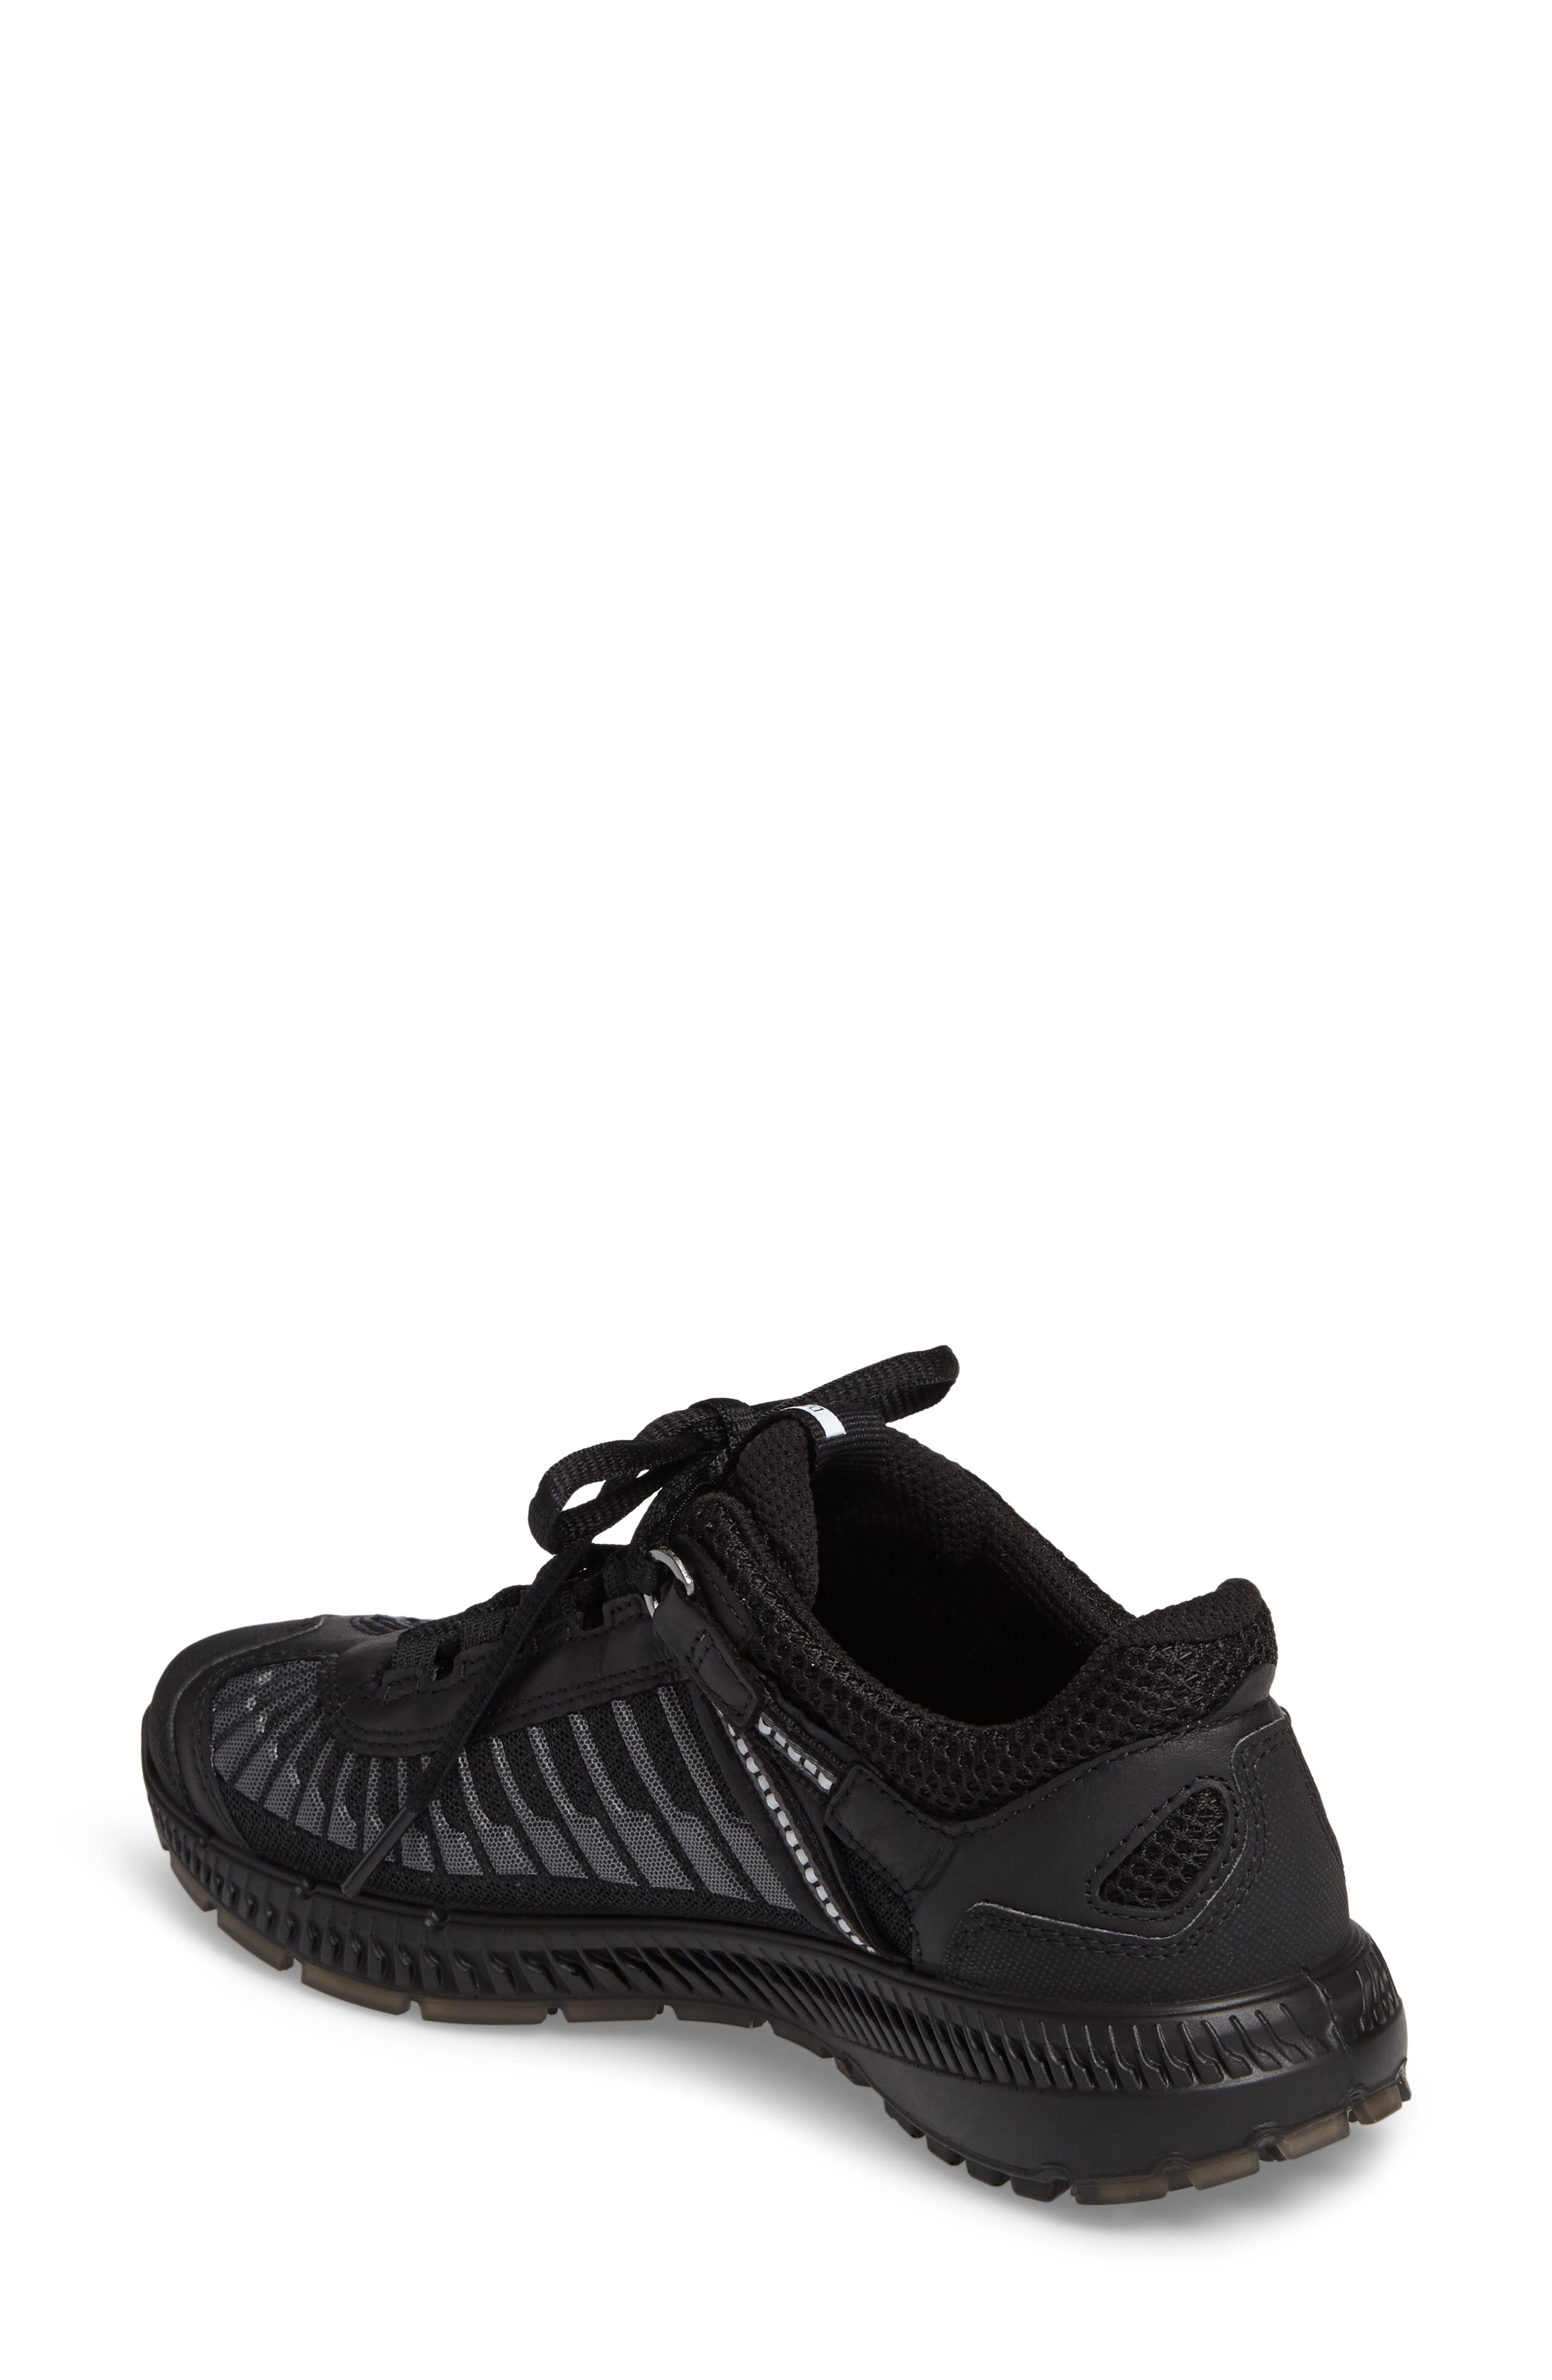 Intrinsic TR Running Shoe,                             Alternate thumbnail 2, color,                             Black Leather